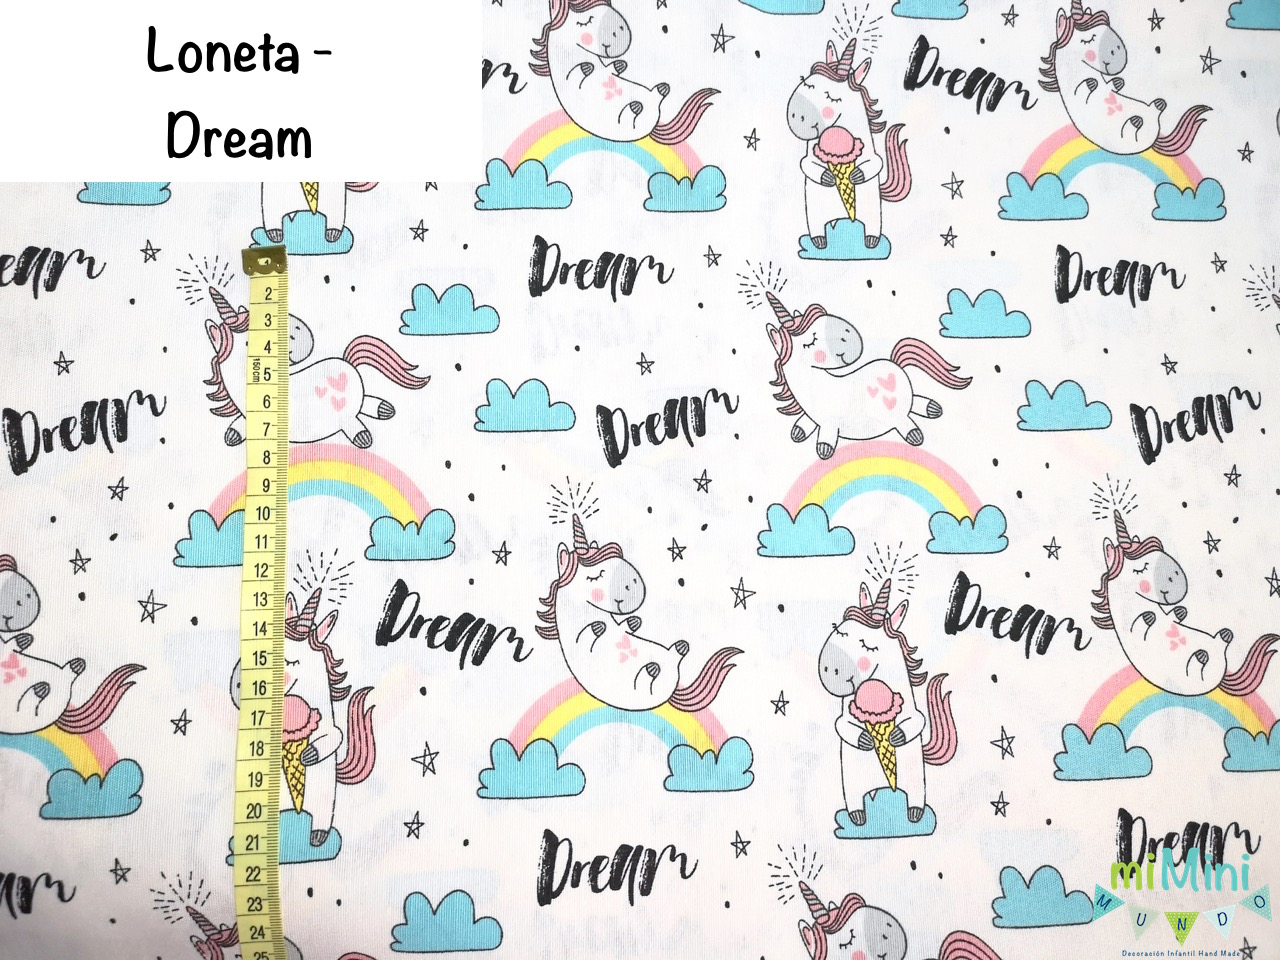 Loneta - Dream